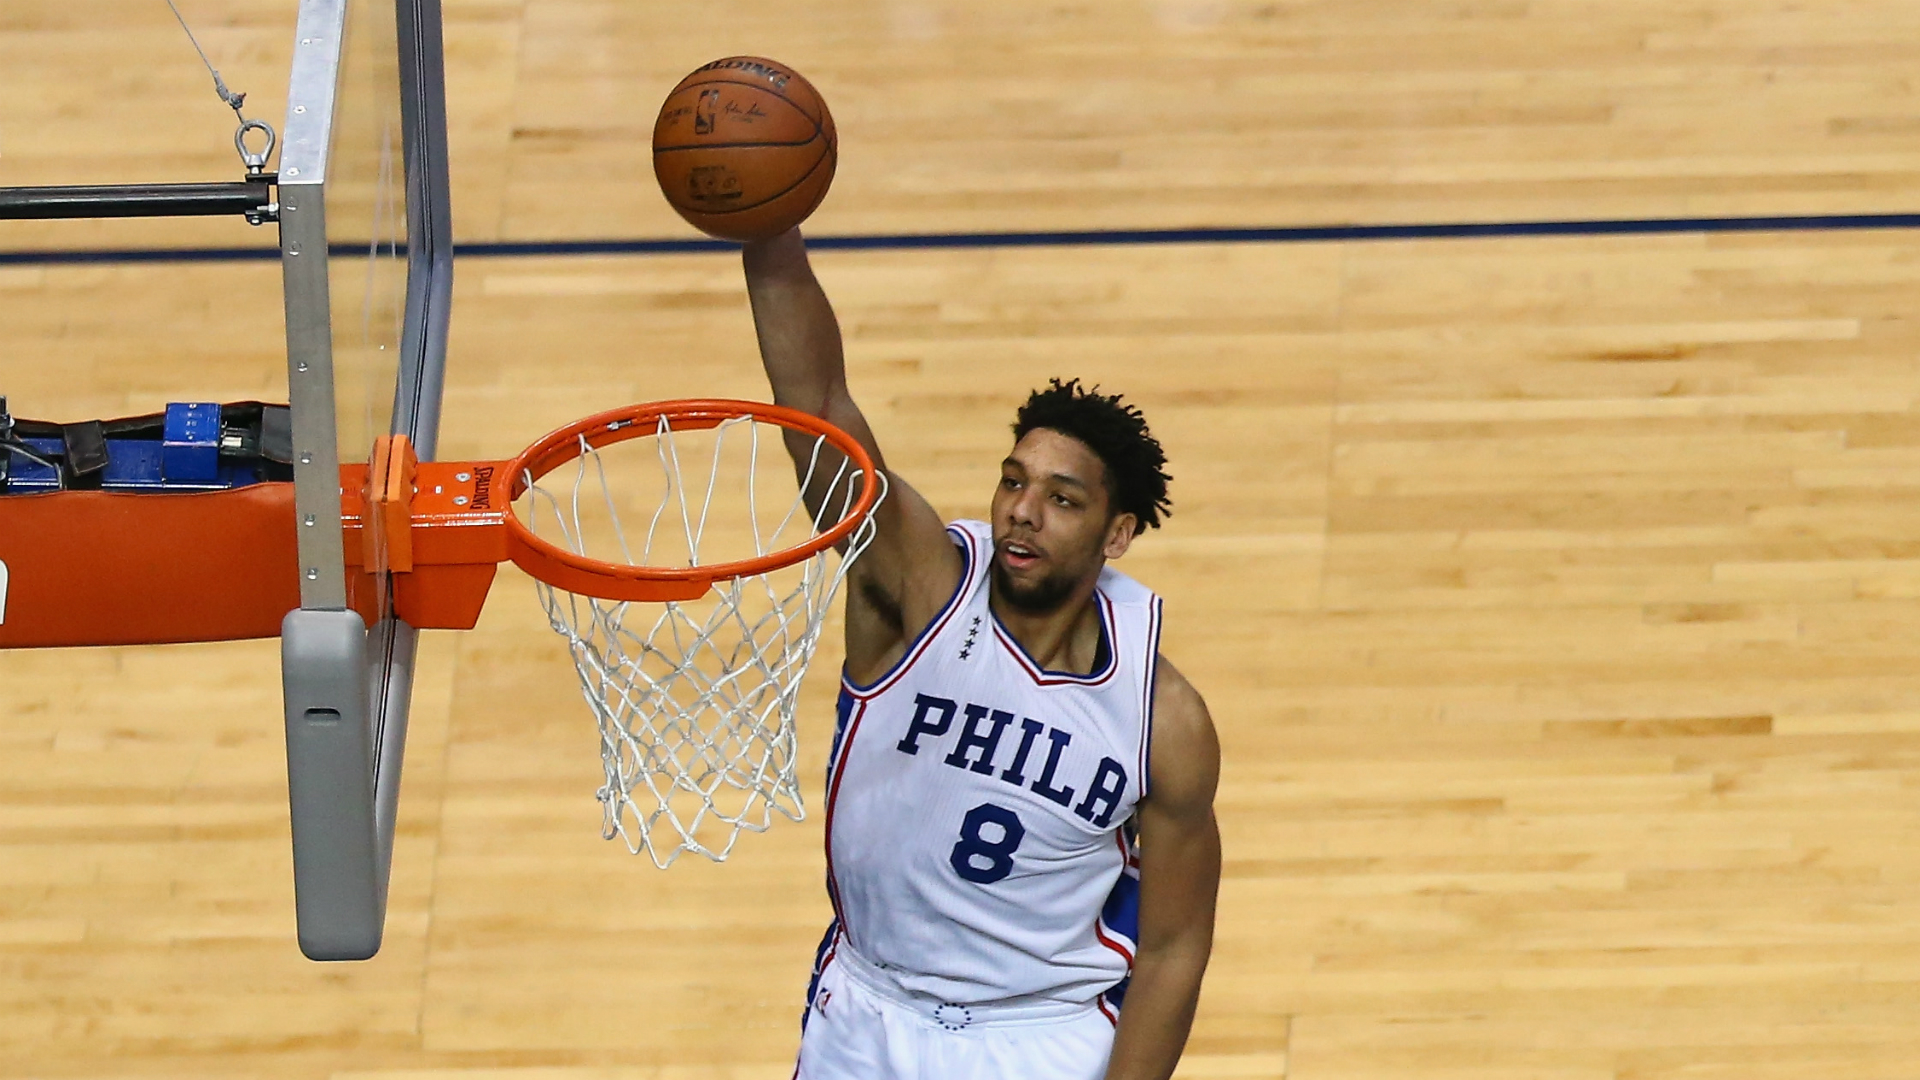 NBA trade rumors: Pelicans could land Jahlil Okafor